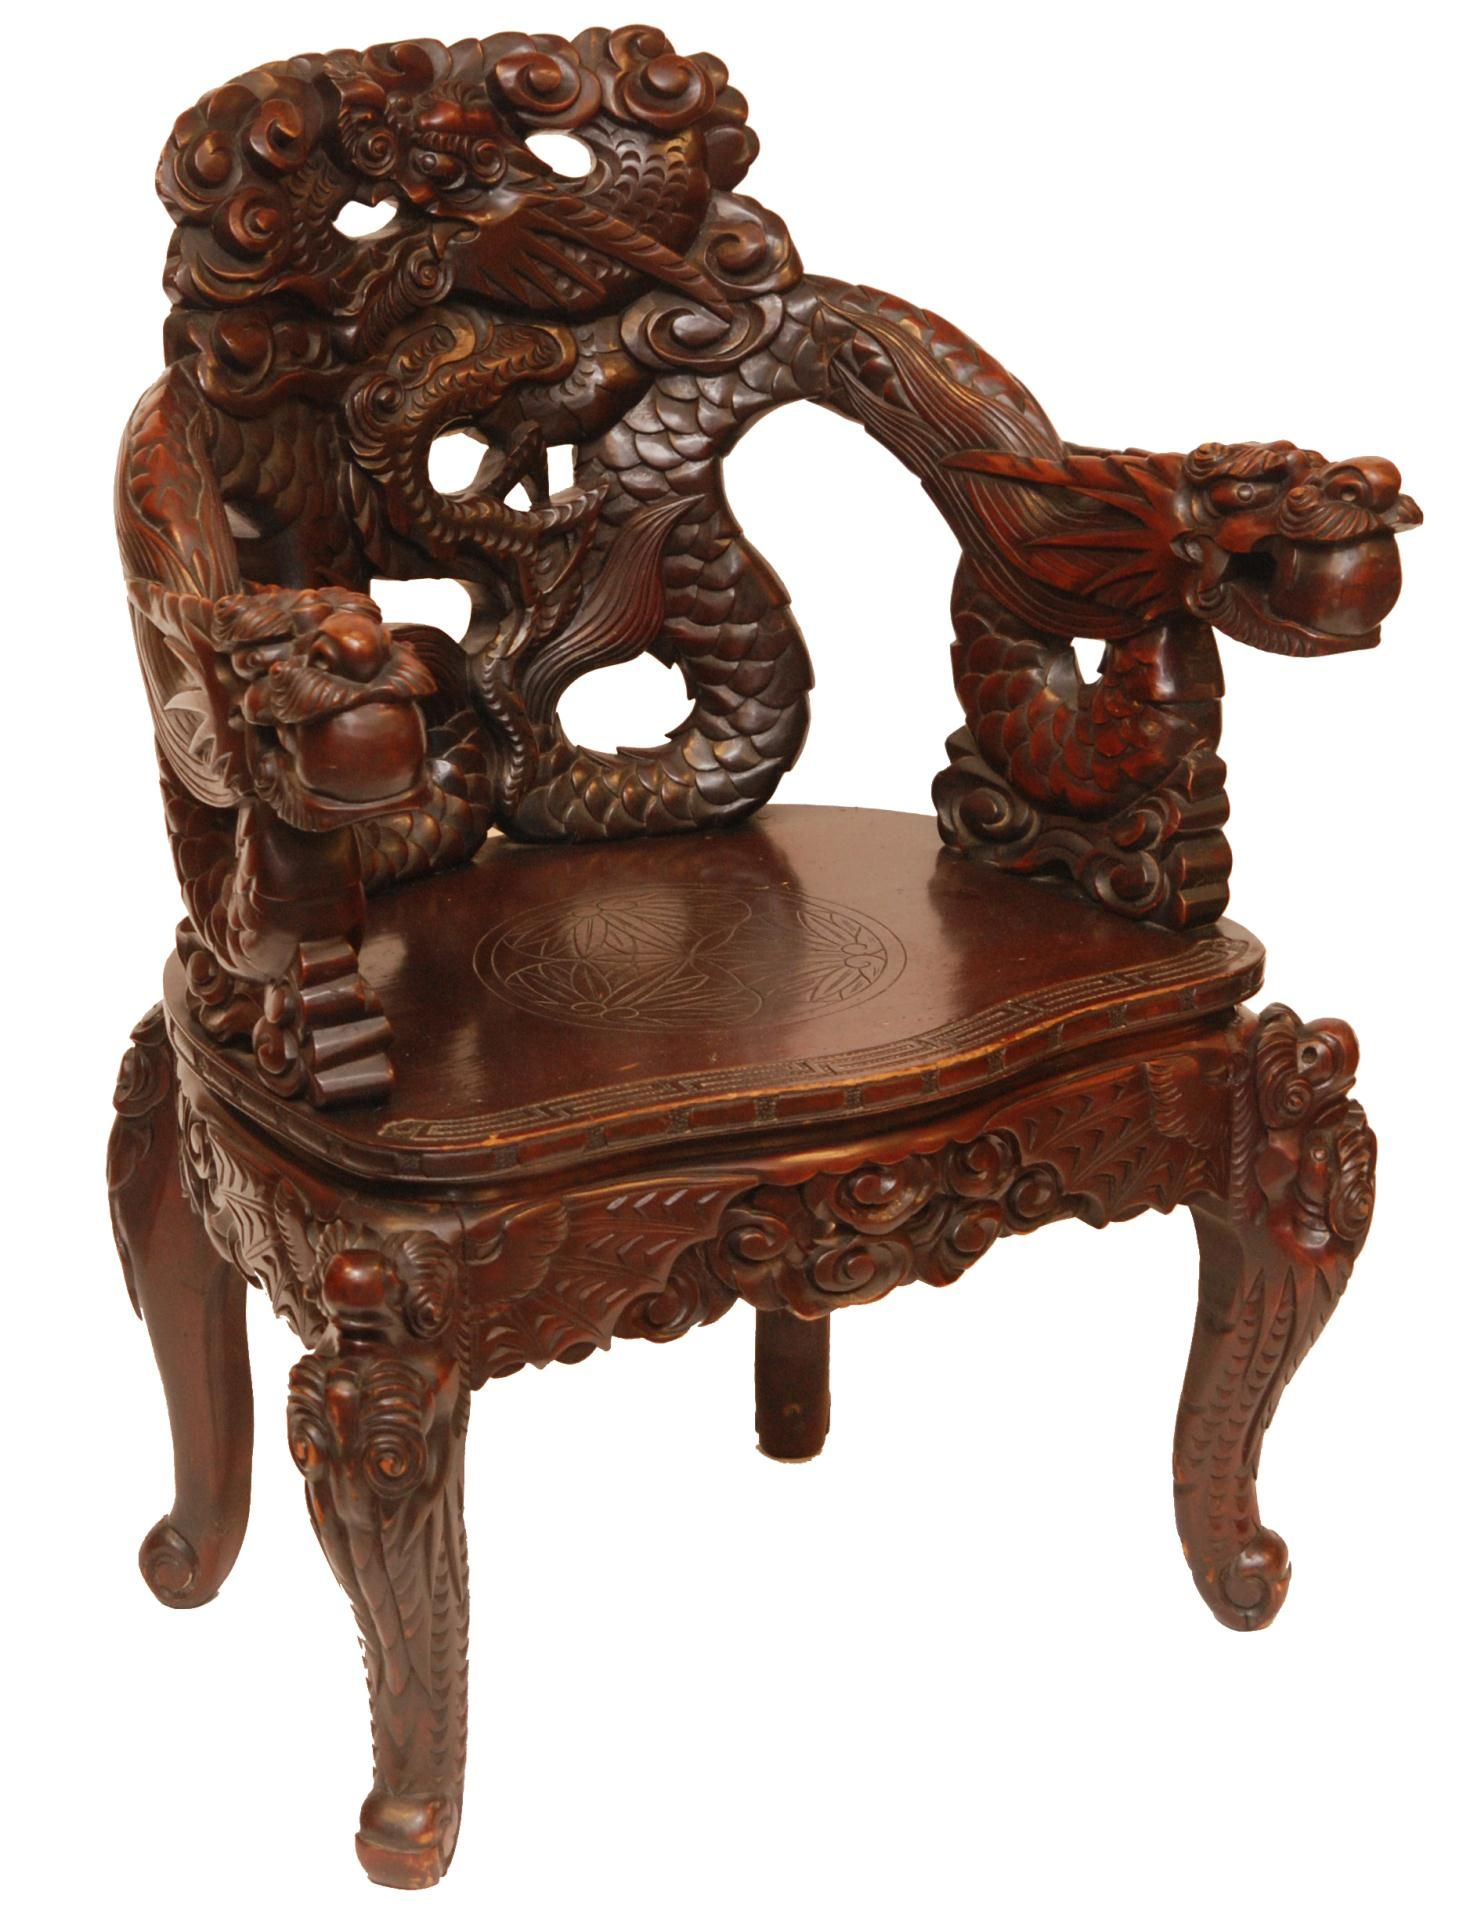 Ancient roman furniture chairs - Chinese Wood Carvings 557 Chinese Carved Wooden Dragons Chair Chinese Hand Carved And Fully